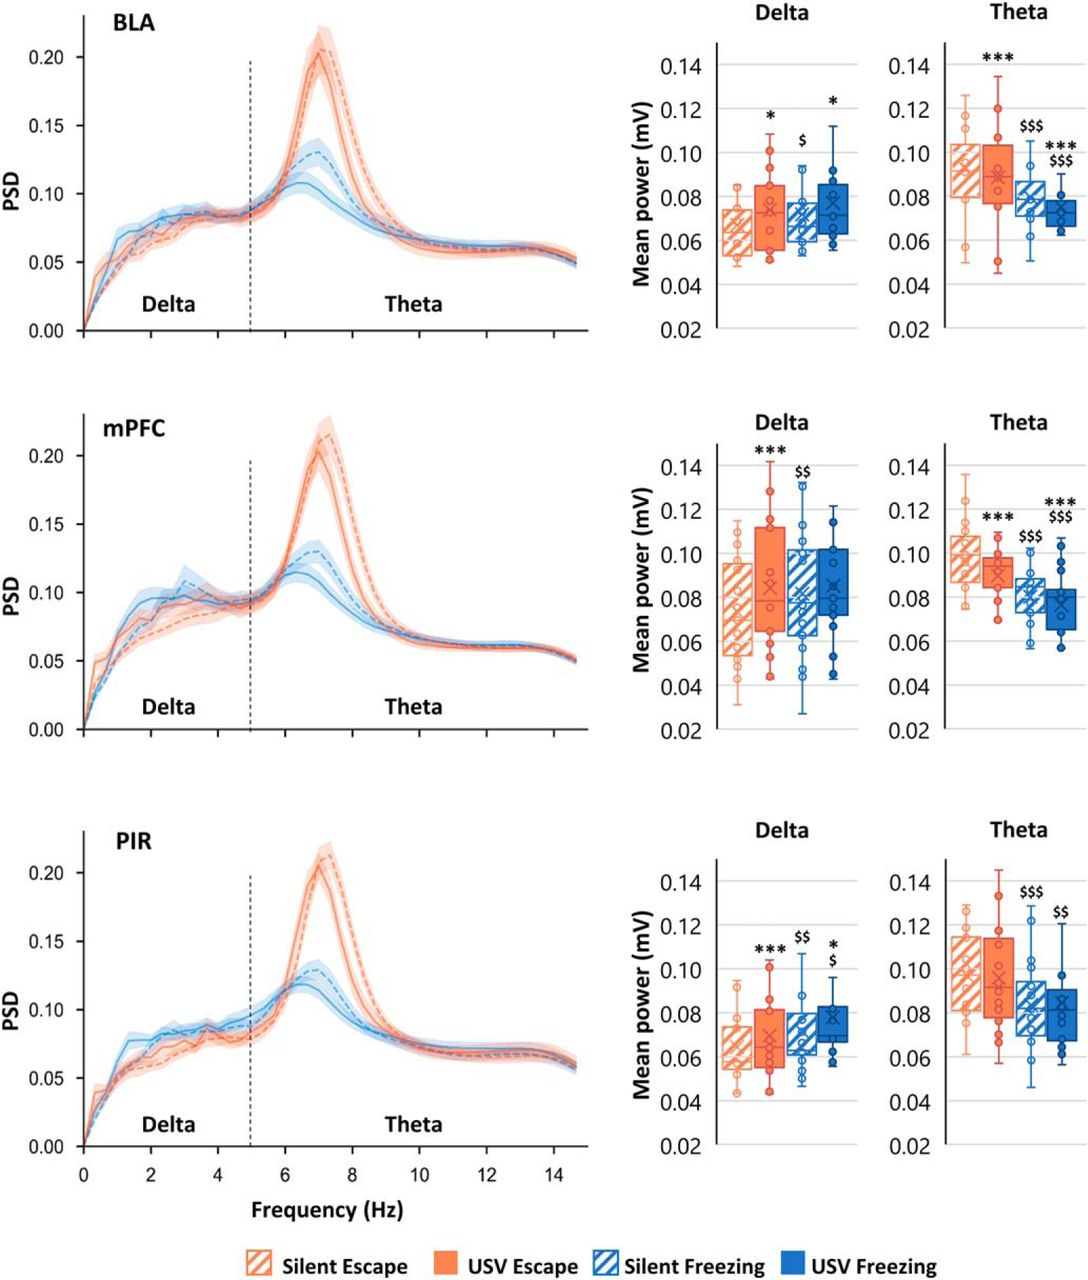 New Insights from 22-kHz Ultrasonic Vocalizations to Characterize